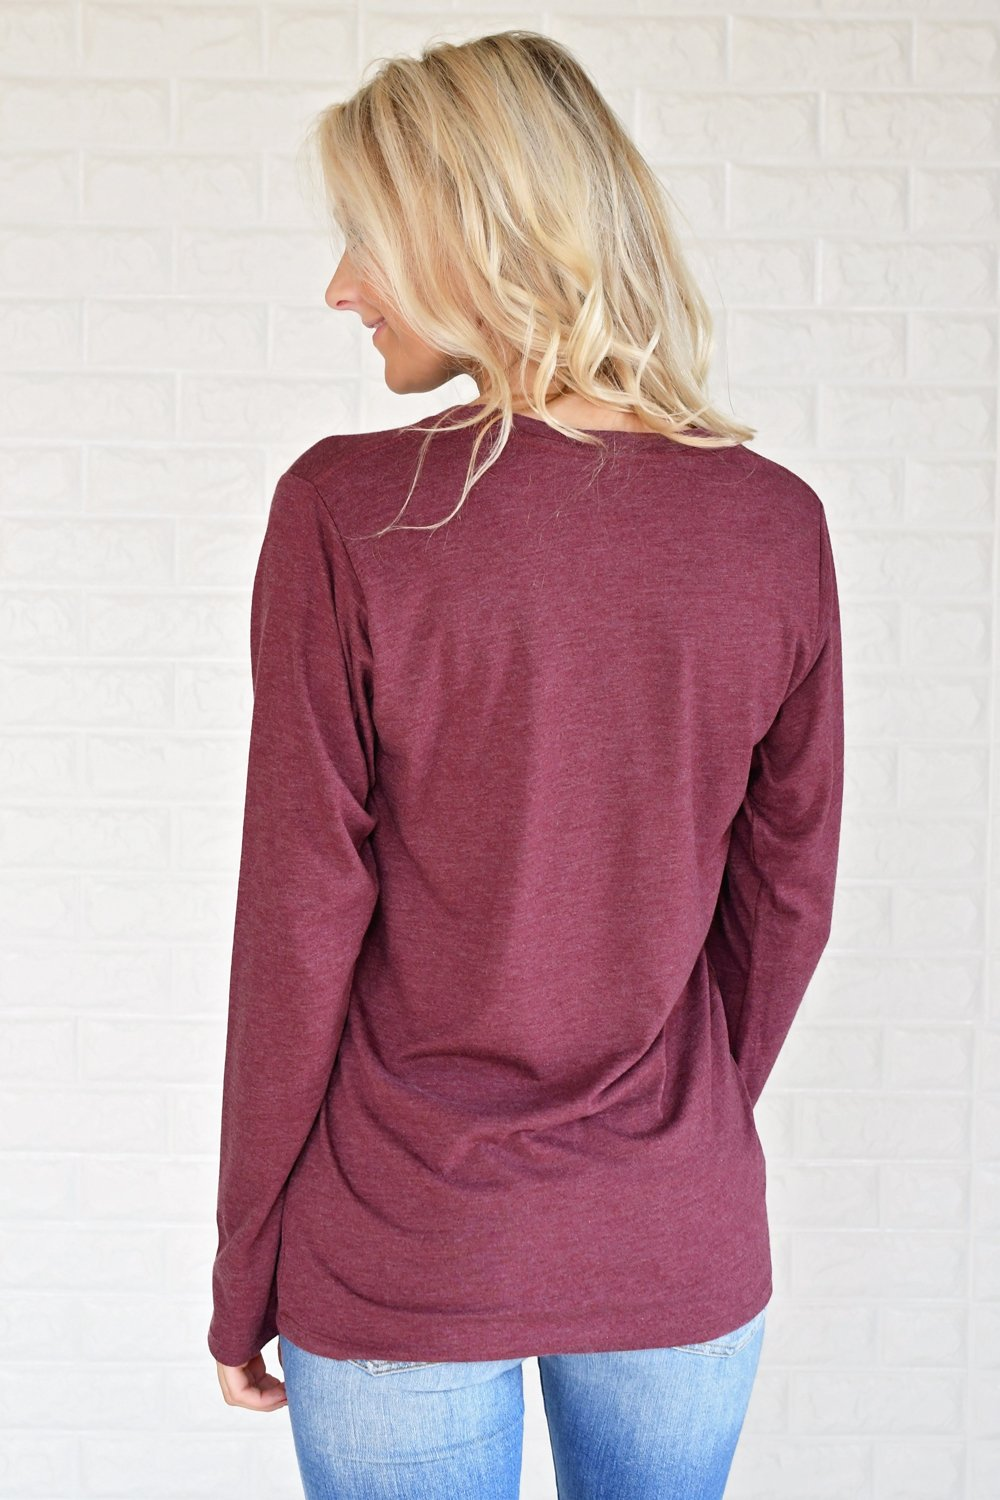 #Autumn Long Sleeve Tee